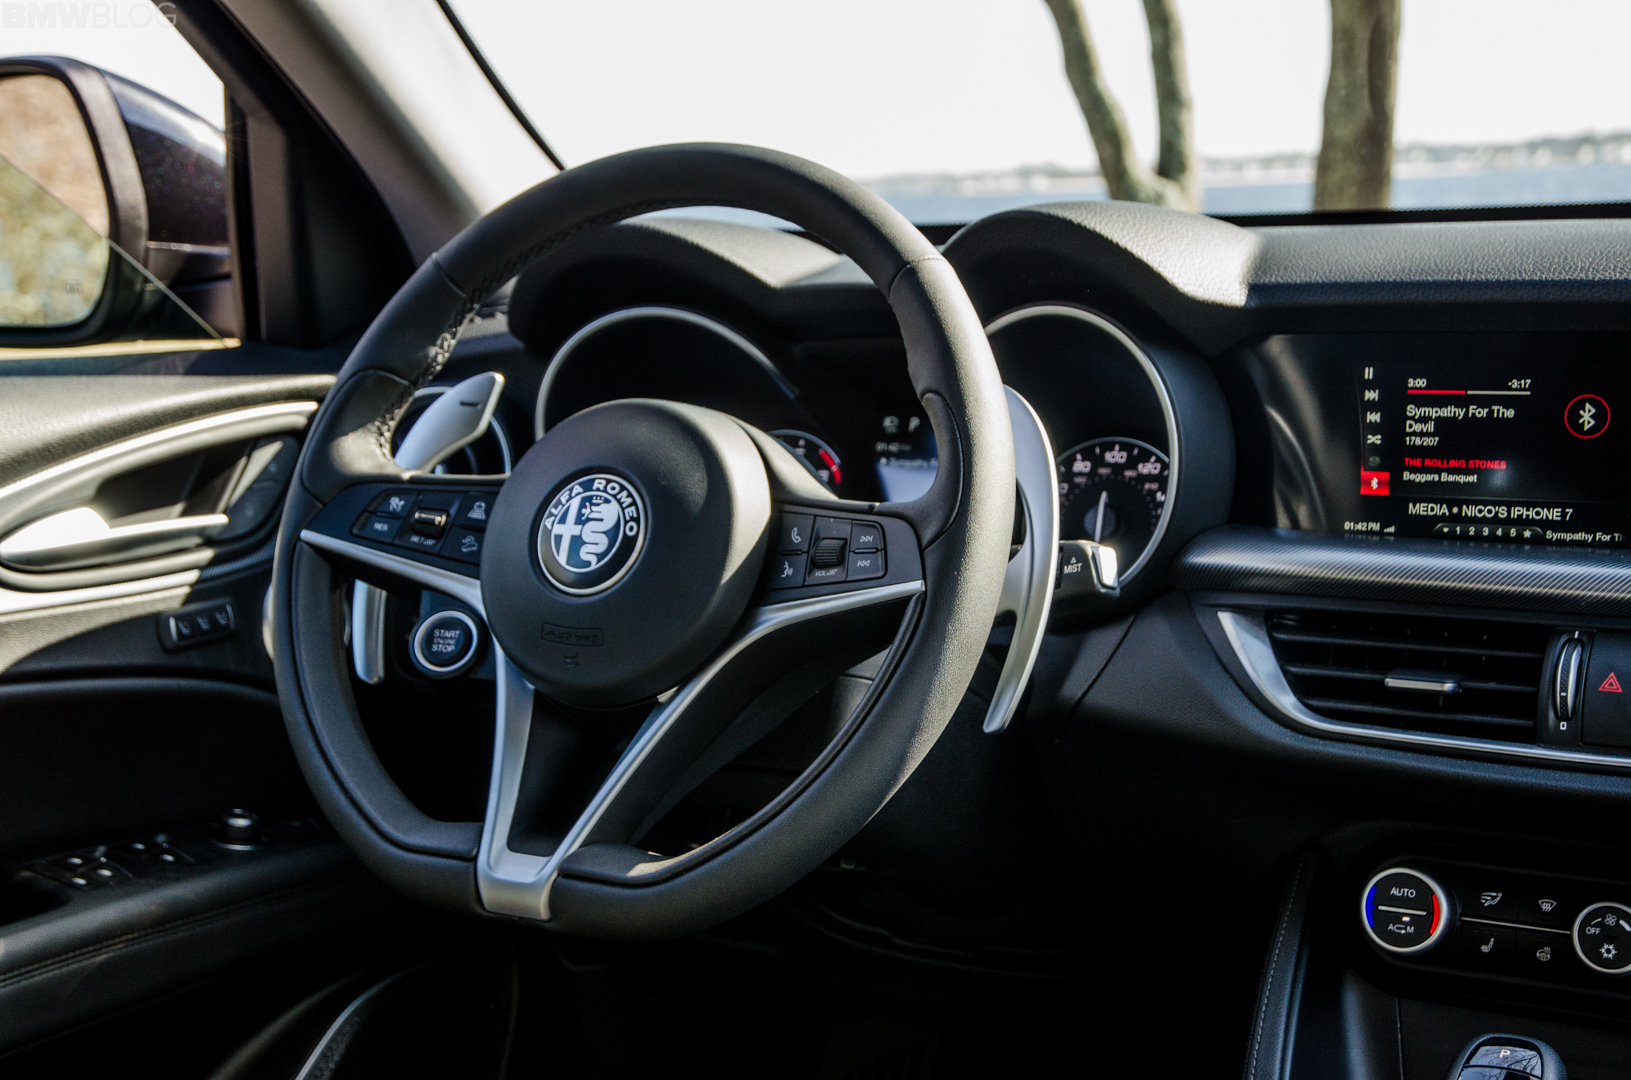 First Drive Alfa Romeo Stelvio The Leaning Tower Of Steering Though Its Somewhat Sloppy Ride Tends To Disappear And You Can Properly Enjoy It Thanks Great Impressive Chassis Dynamics Punchy